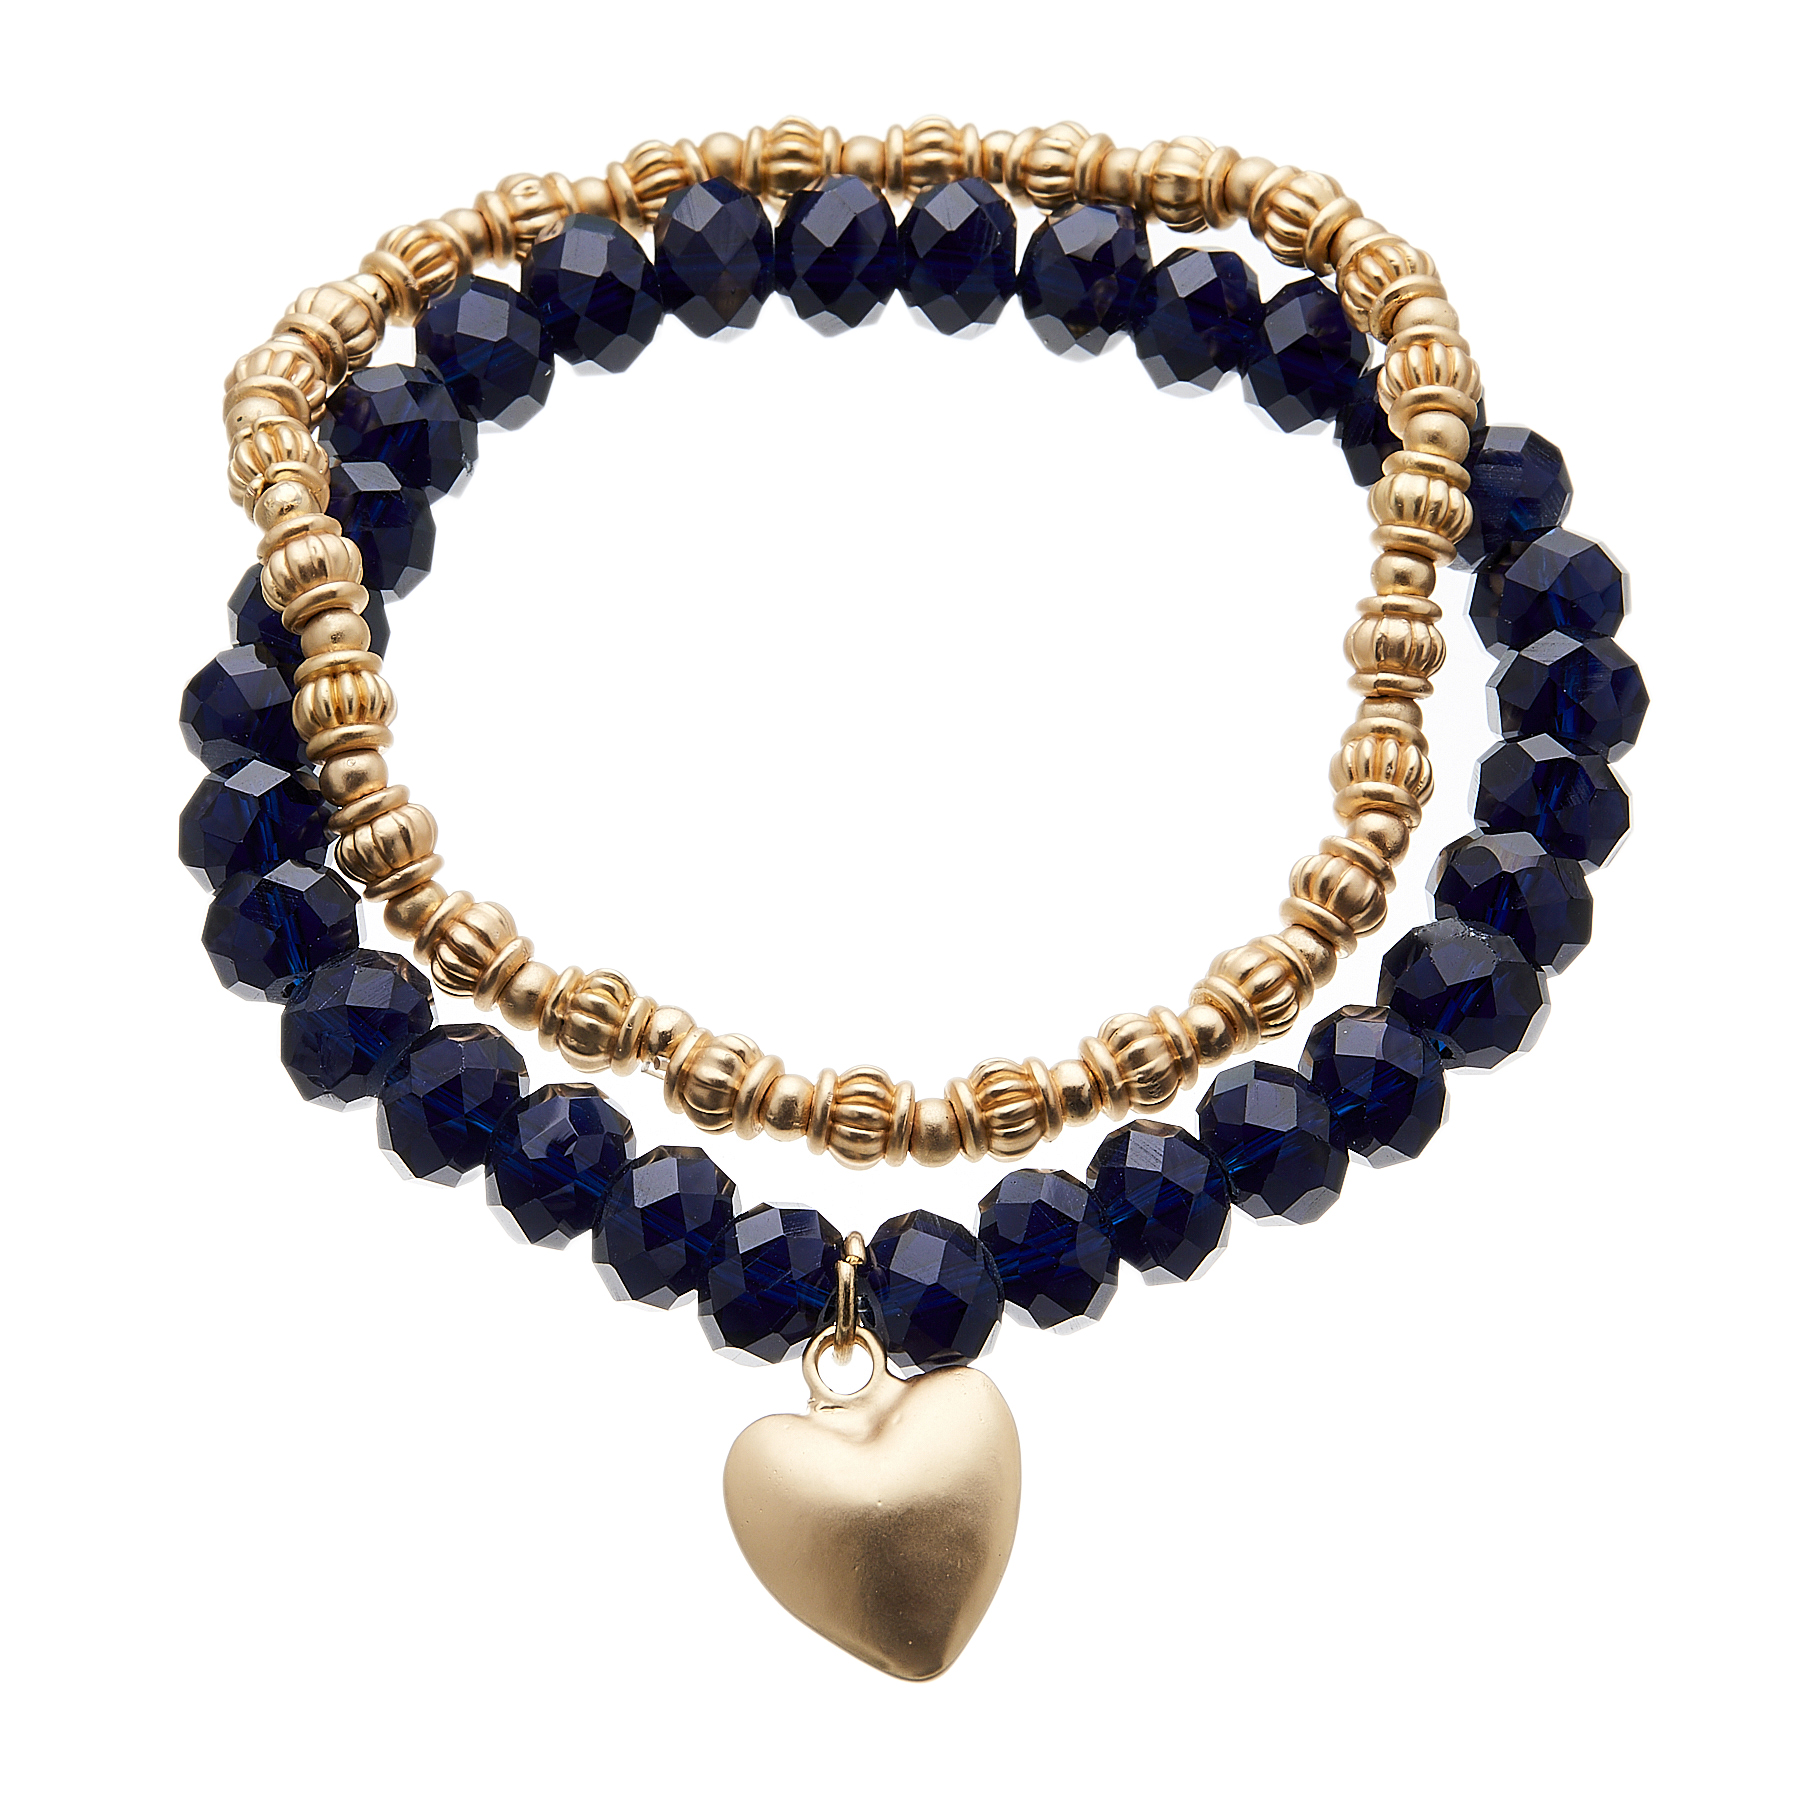 Set of two Bracelets - matt gold beads and navy blue with a heart charm - Yori B20-28